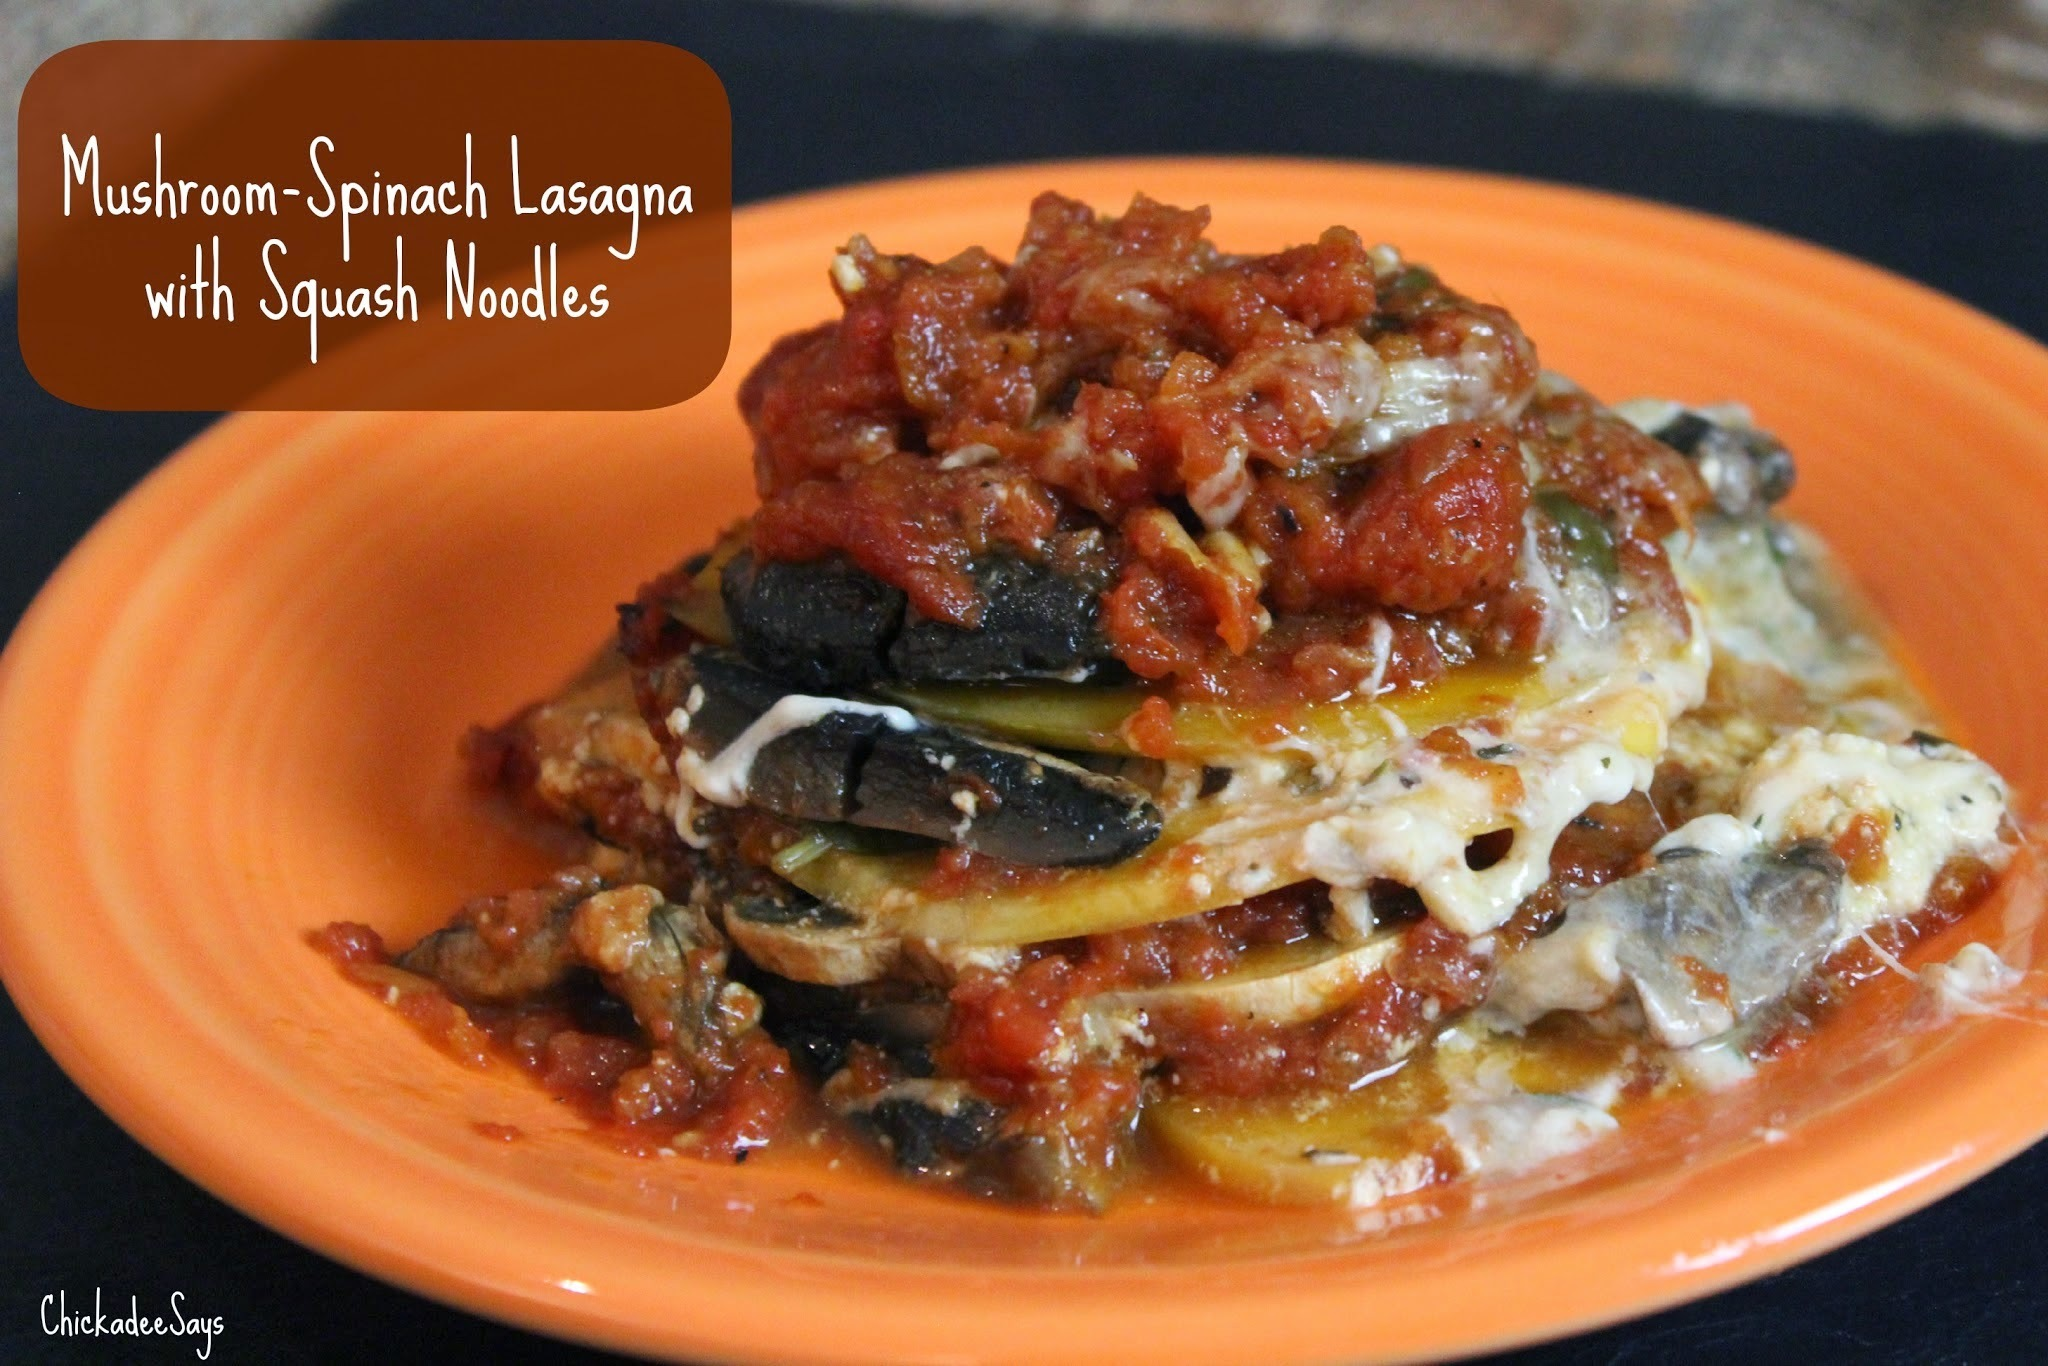 Meatless Monday: Mushroom-Spinach Lasagna with Squash Noodles